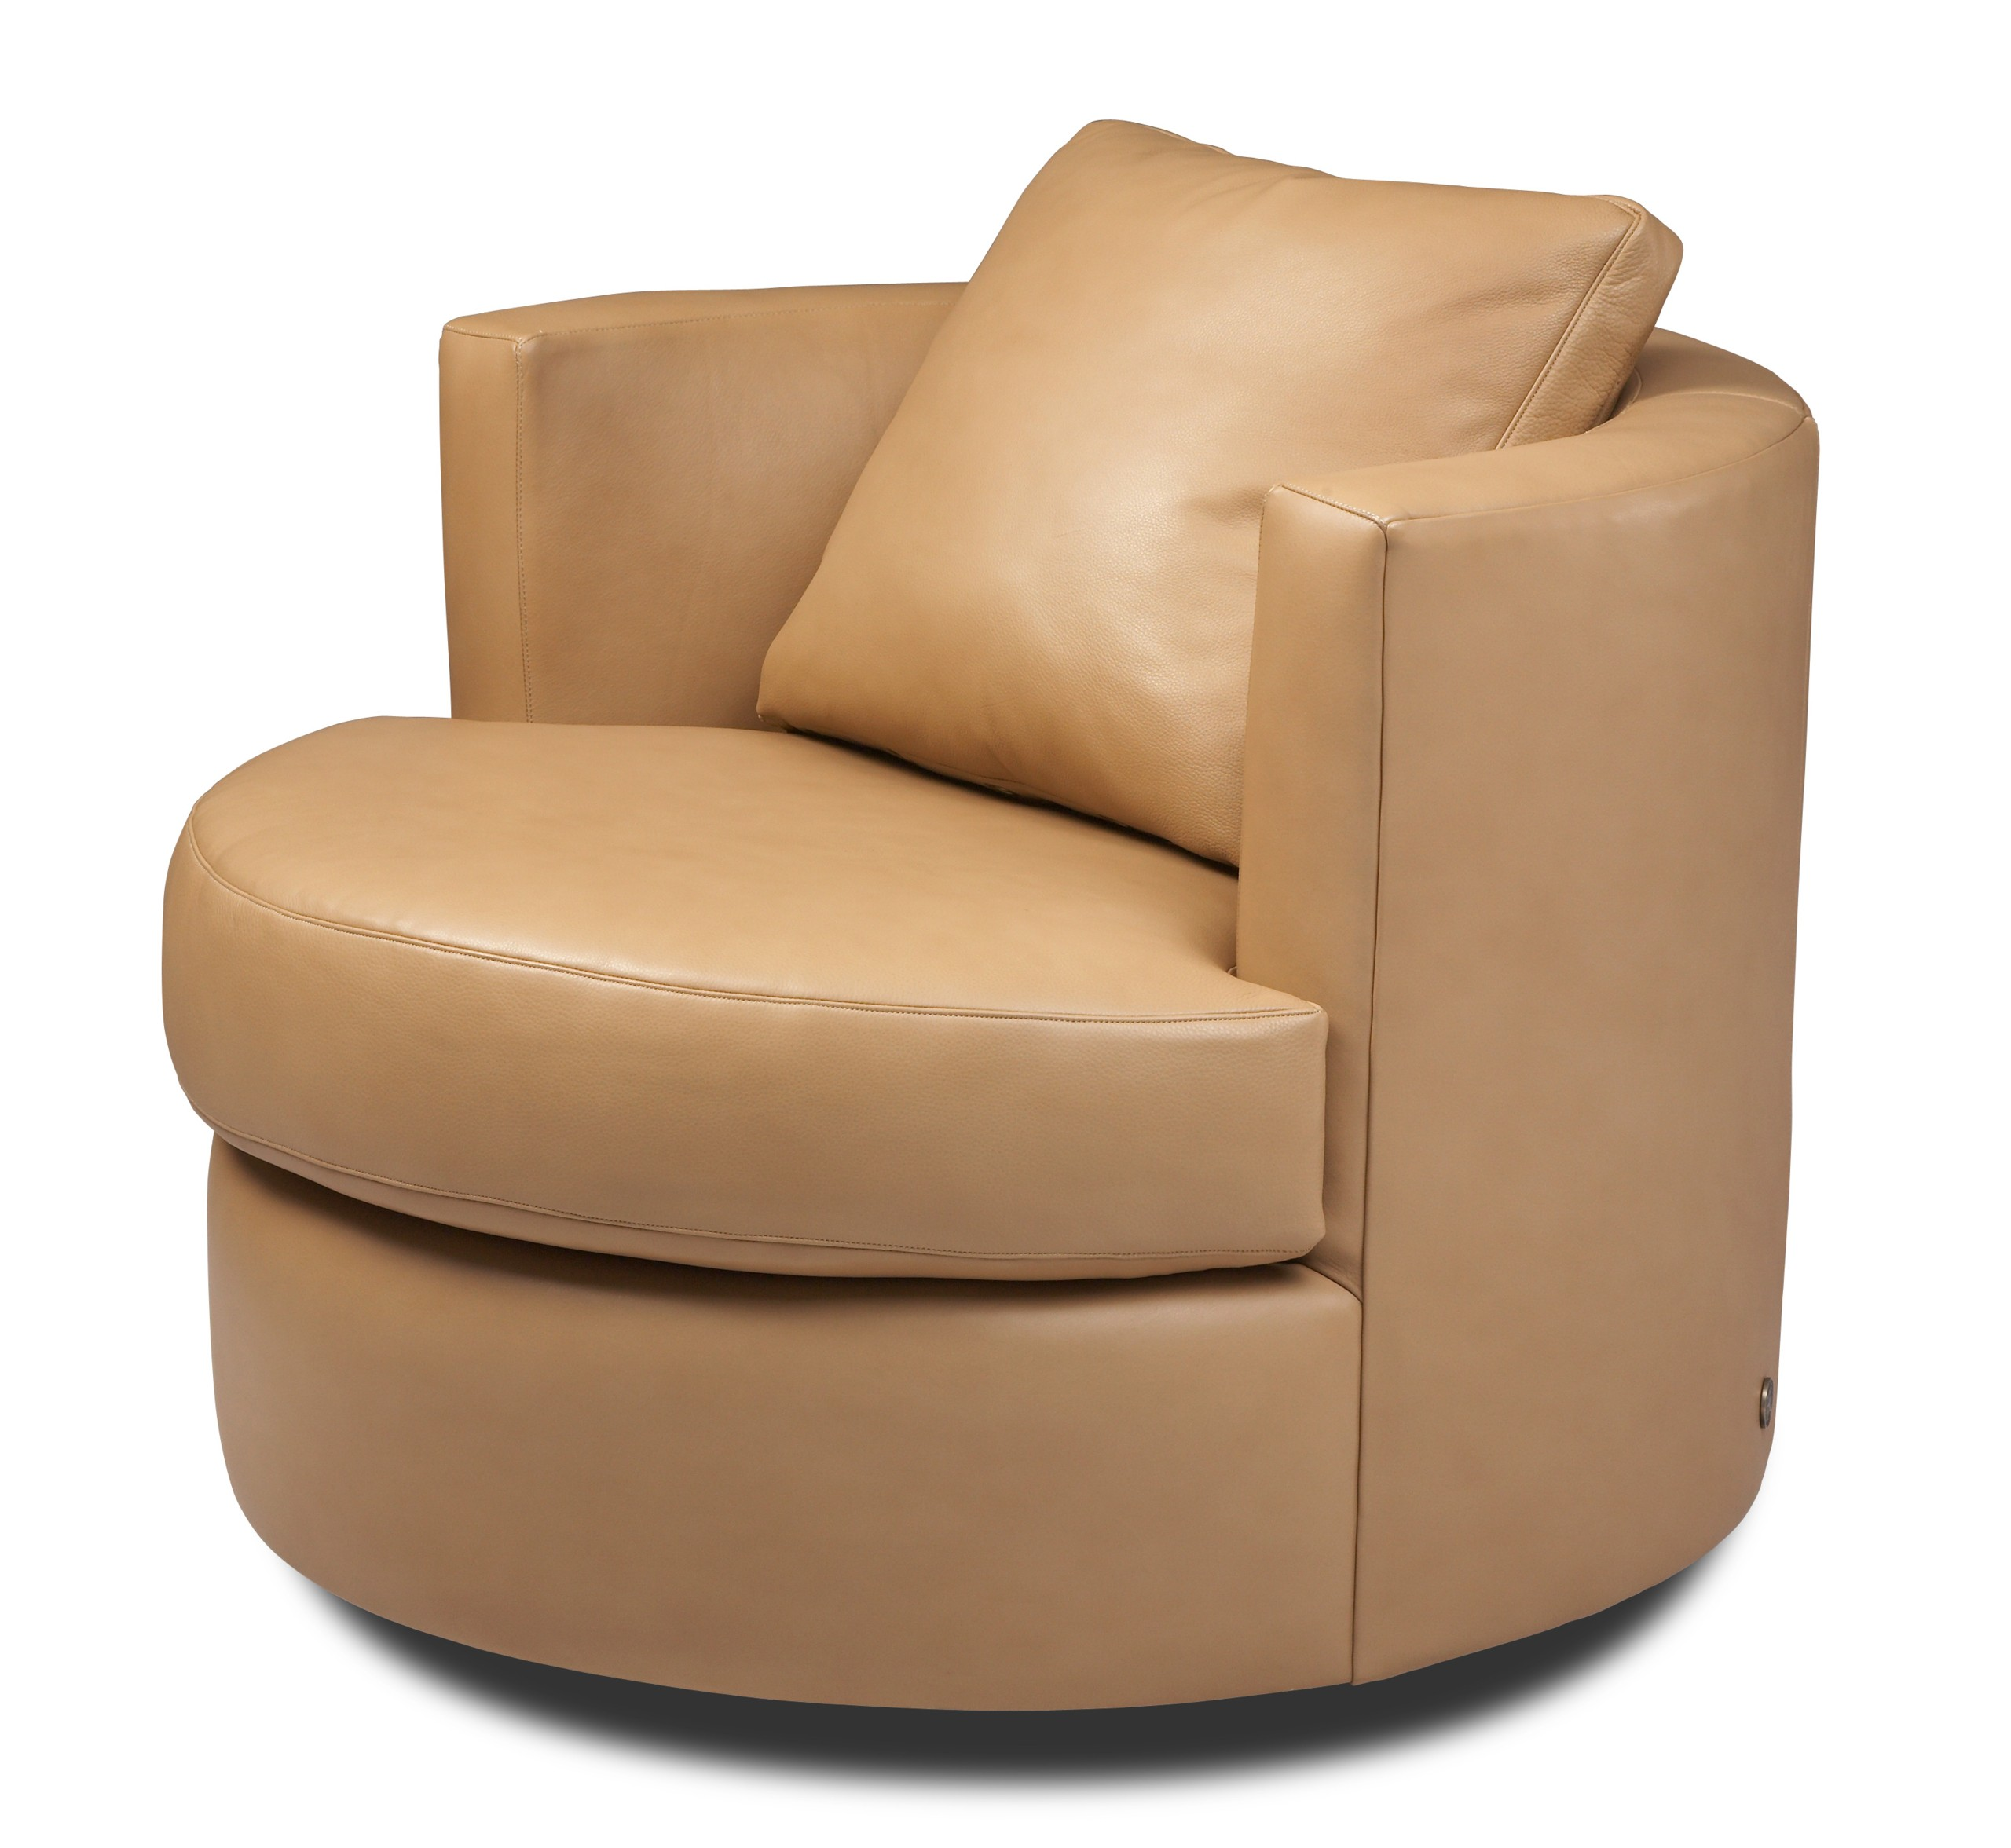 Small Round Swivel Chair